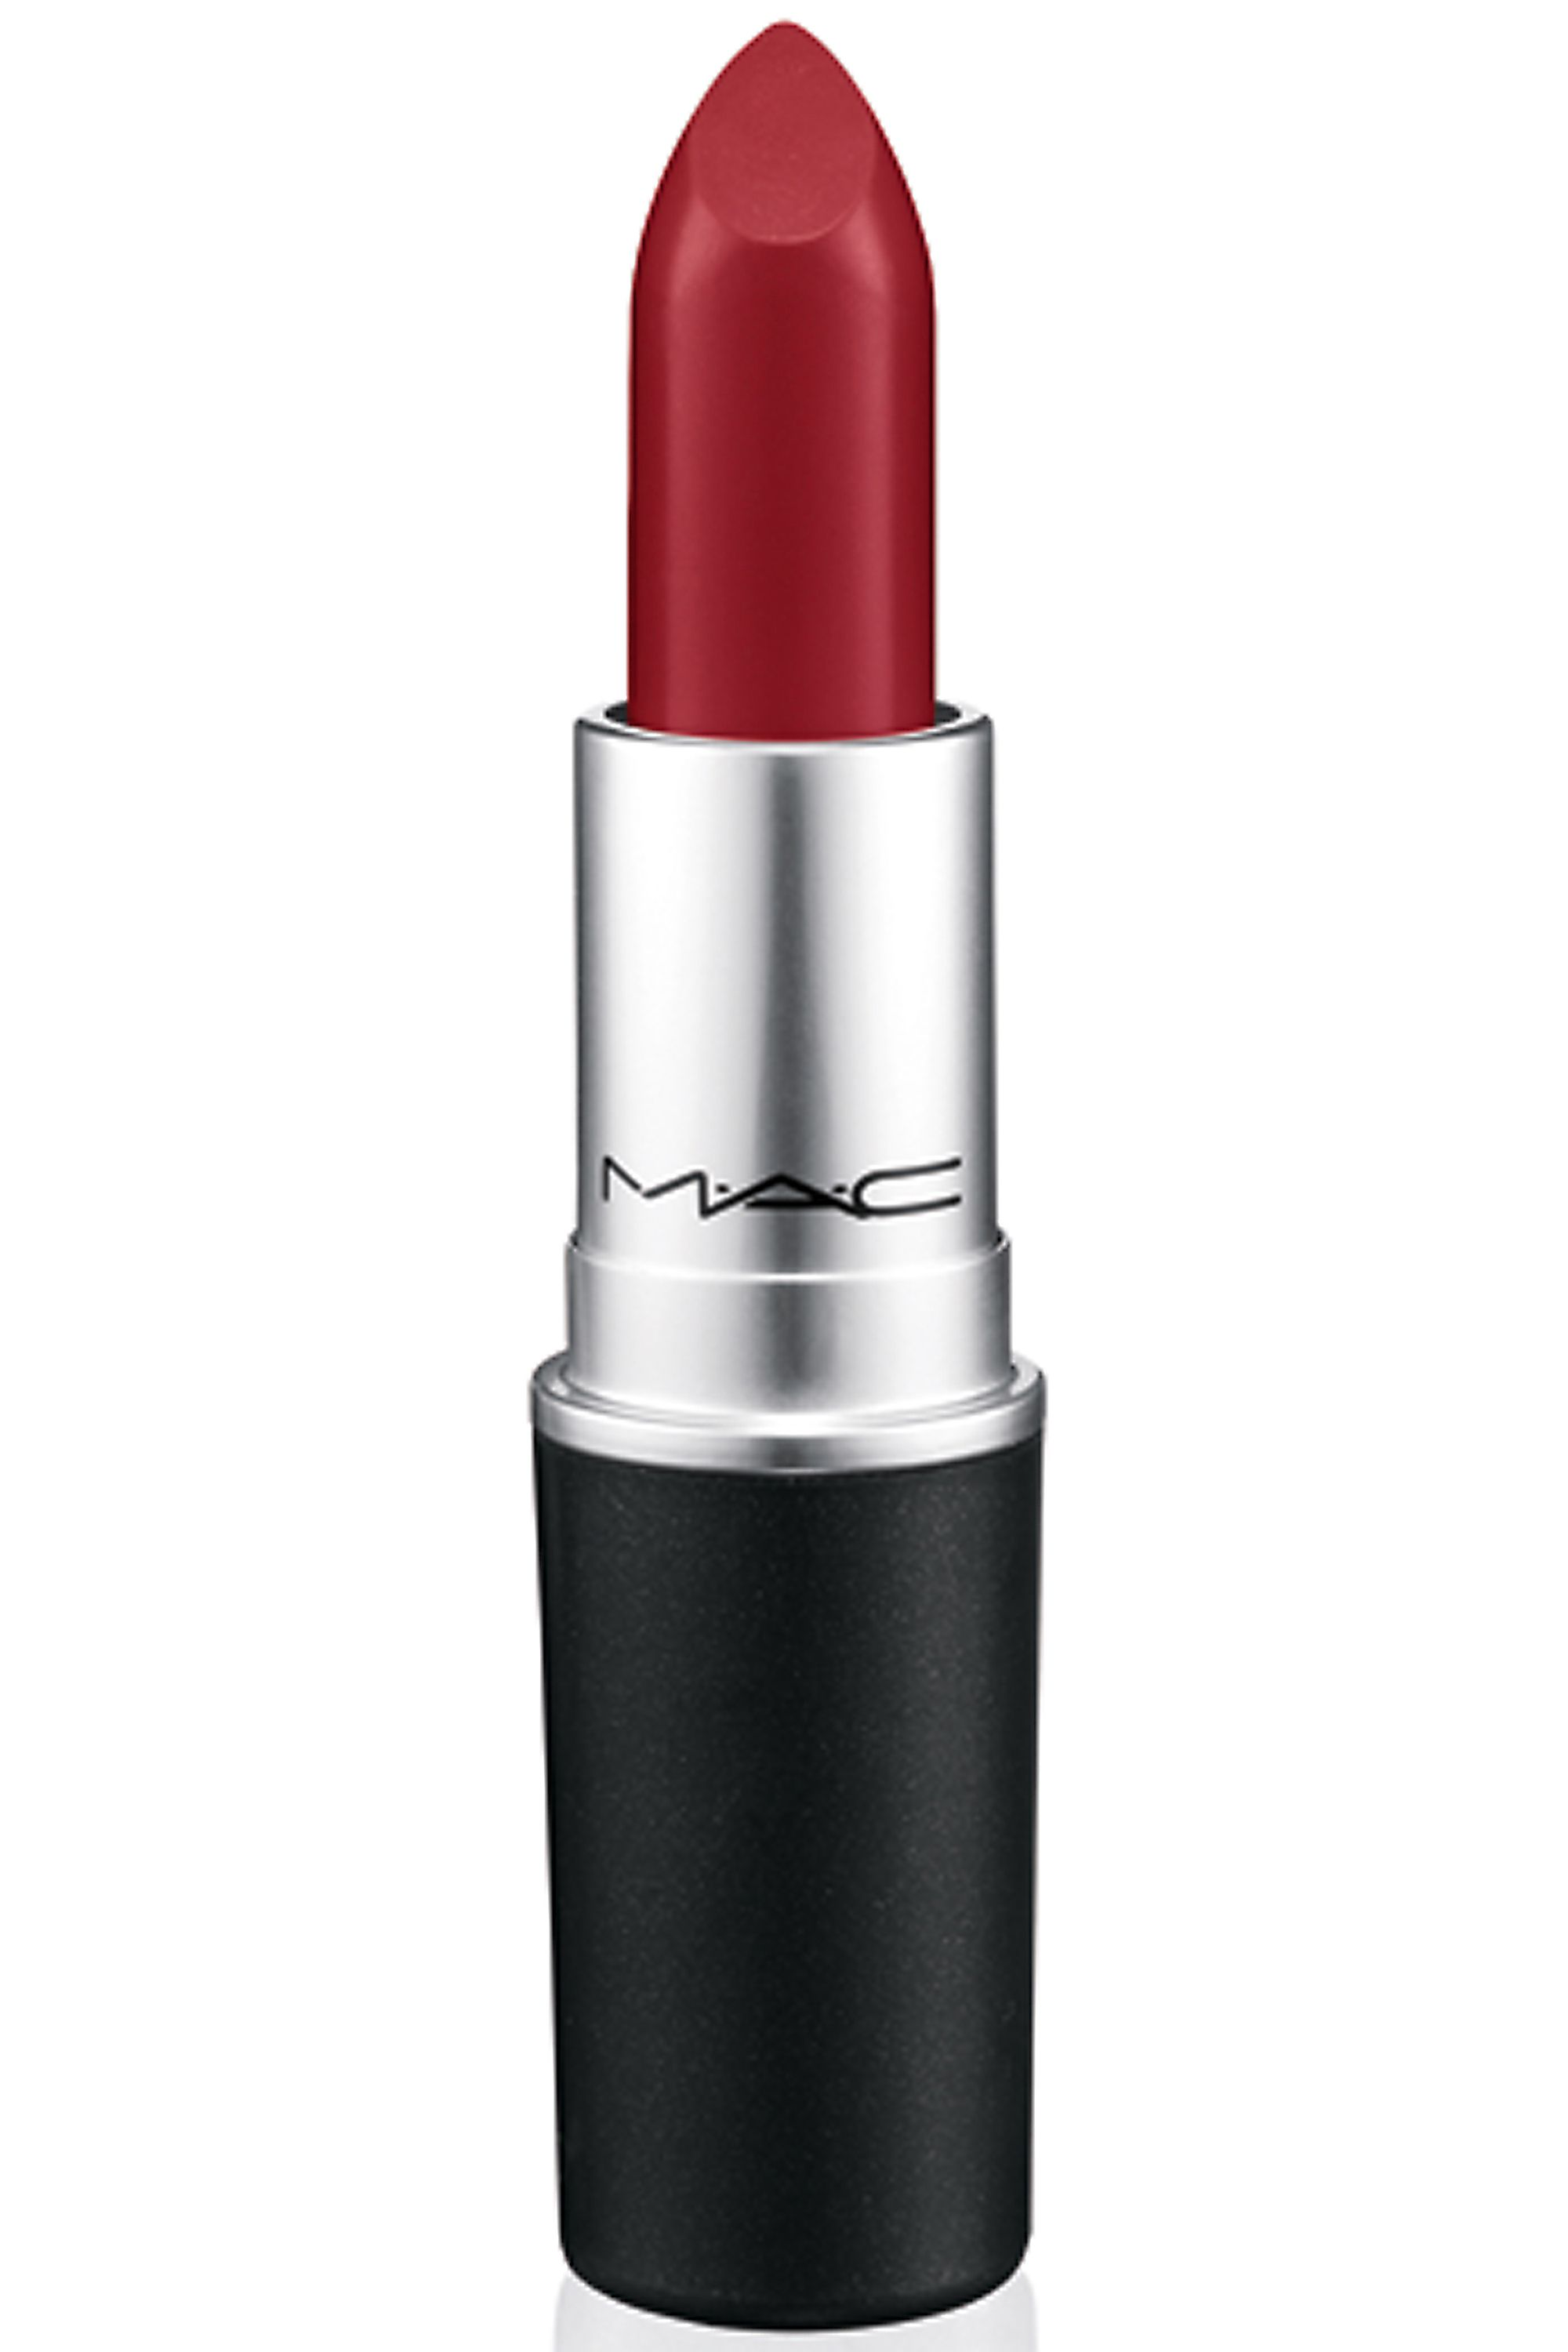 "<p><span class=""redactor-invisible-space"">If you want lipstick that lasts through hours of eating, drinking and kissing (and doesn't leave evidence), you want this ultramatte red that magically looks good on everyone. </span></p><p><strong>MAC</strong> Lipstick in Ruby Woo, $16, <a href=""http://www.maccosmetics.com/product/13854/310/Products/Makeup/Lips/Lipstick/Lipstick"" target=""_blank"">maccosmetics.com</a>.</p>"